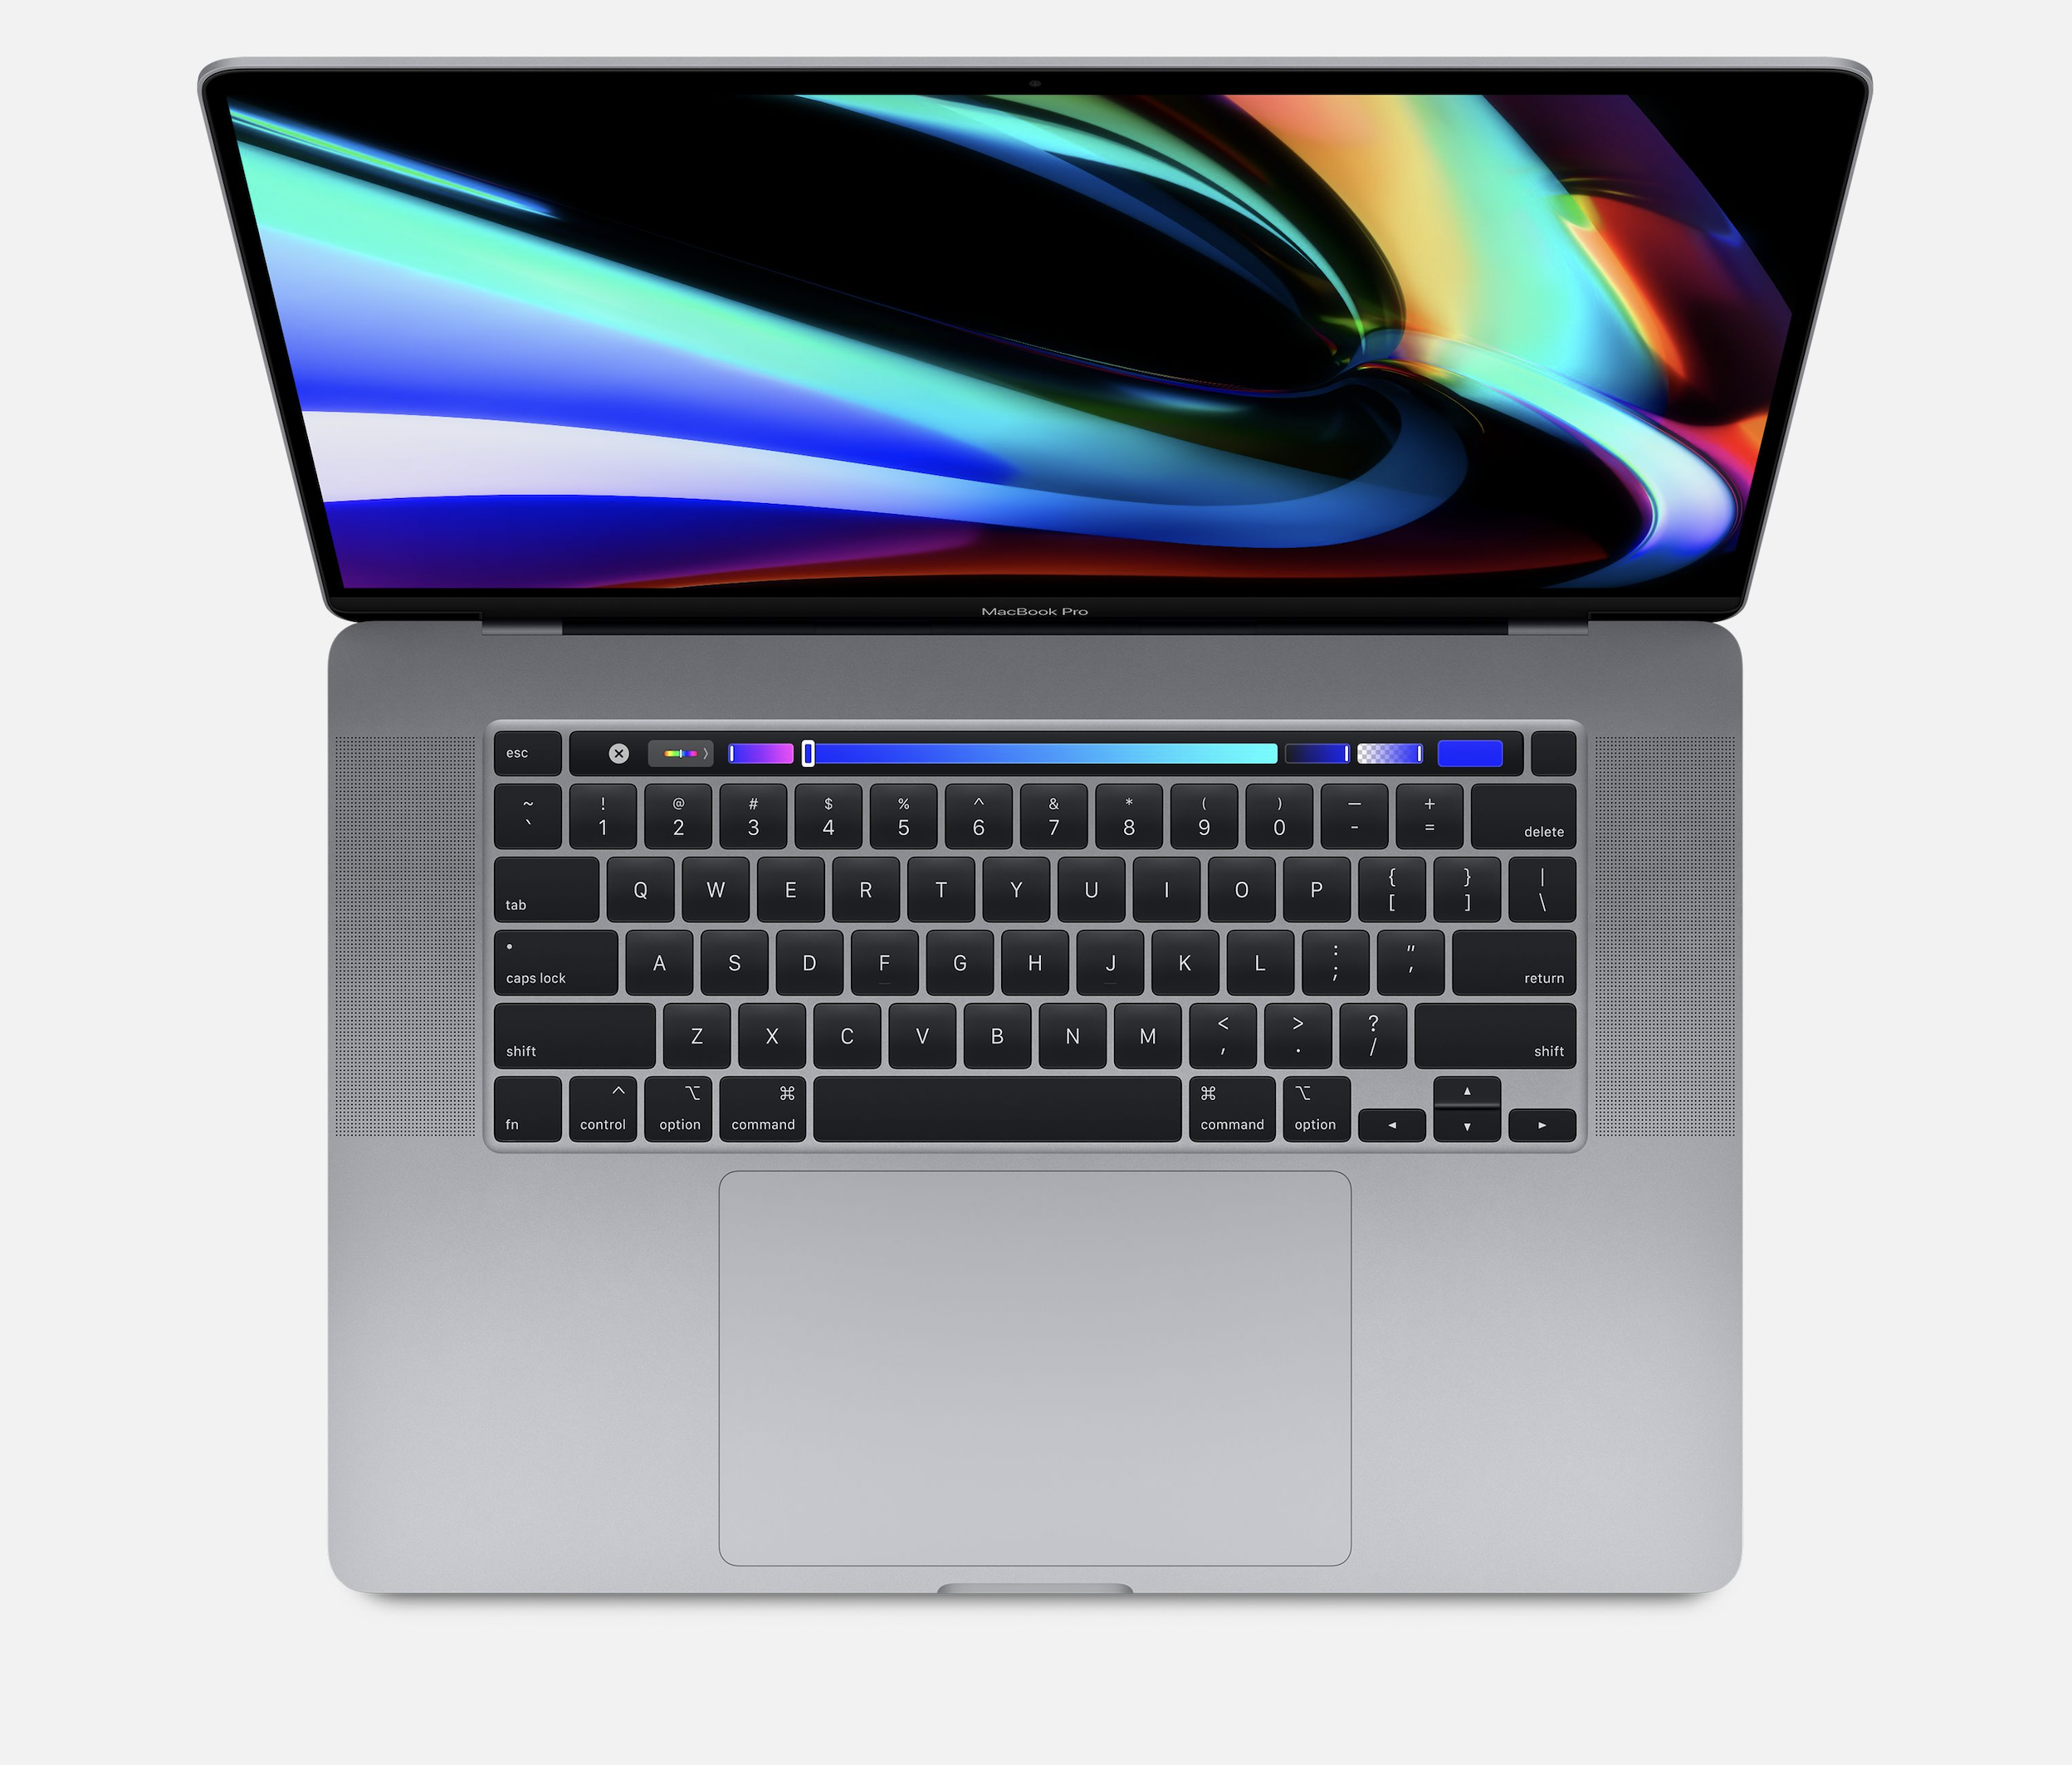 MacBook Pro 16in w/Touch Bar 2.4GHz i9 8-core 16GB/512GB - Space Gray CTO